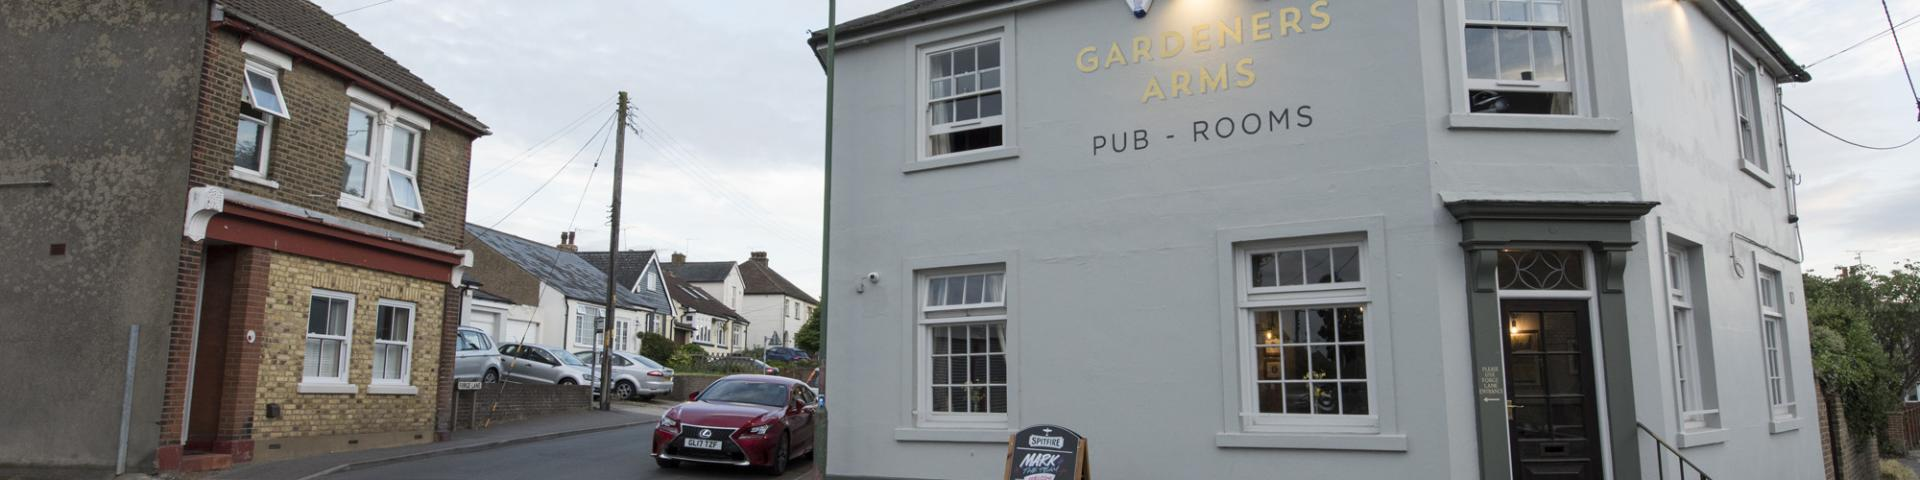 Gardeners Arms, Higham